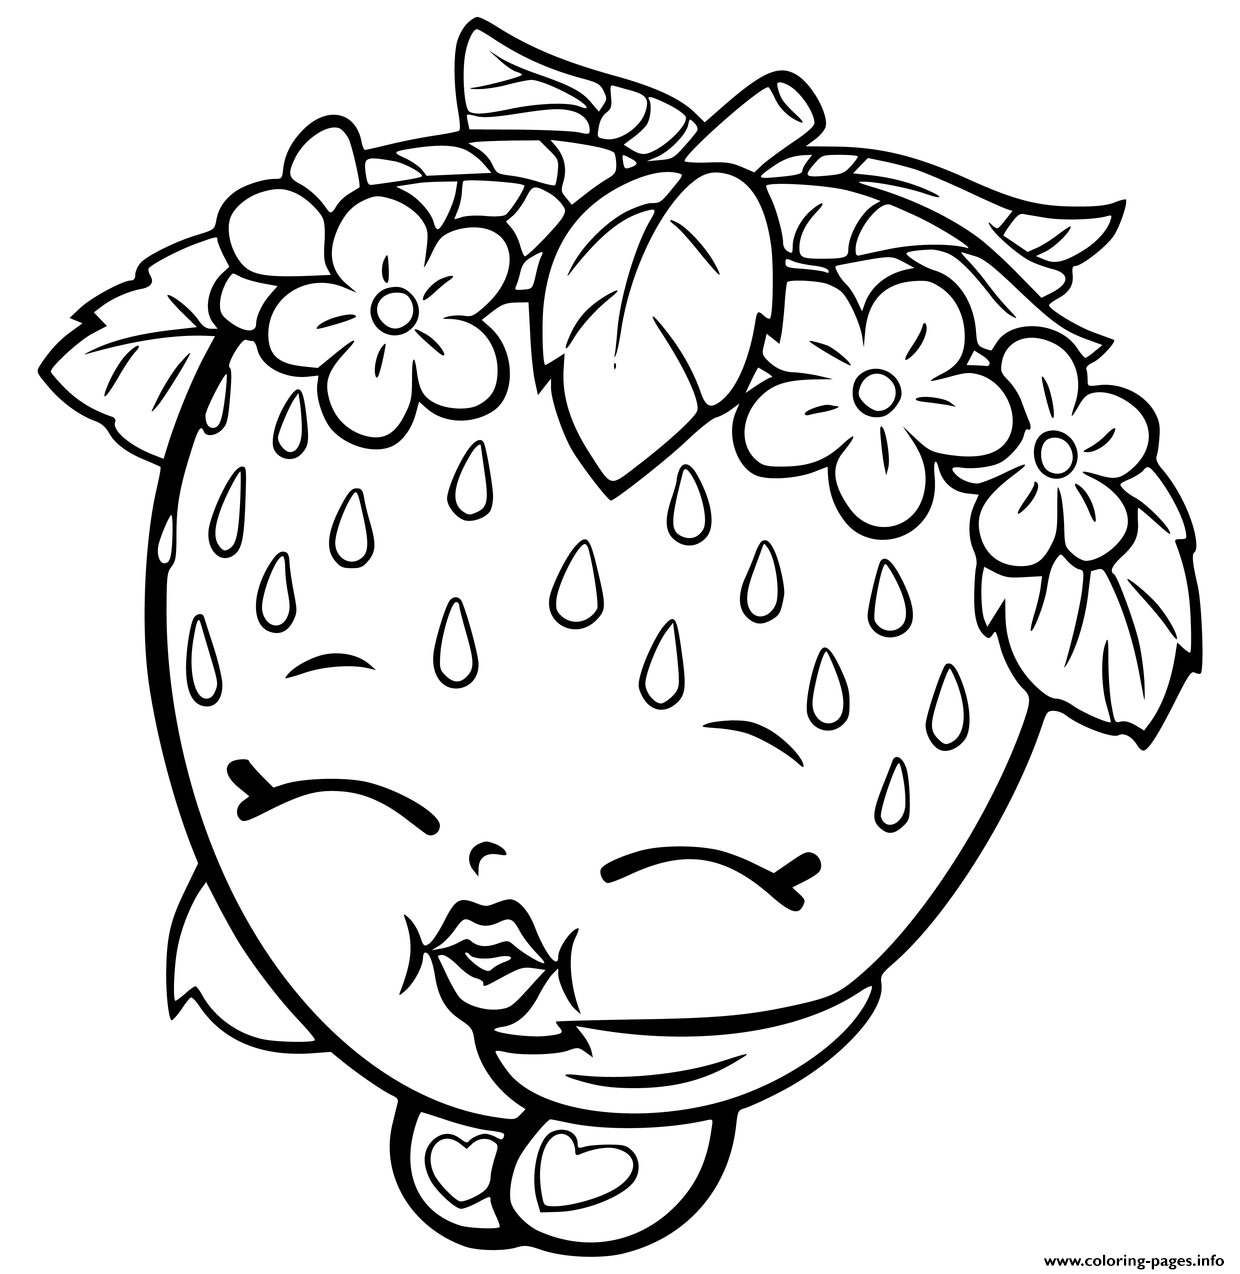 Print shopkins strawberry coloring pages looks good